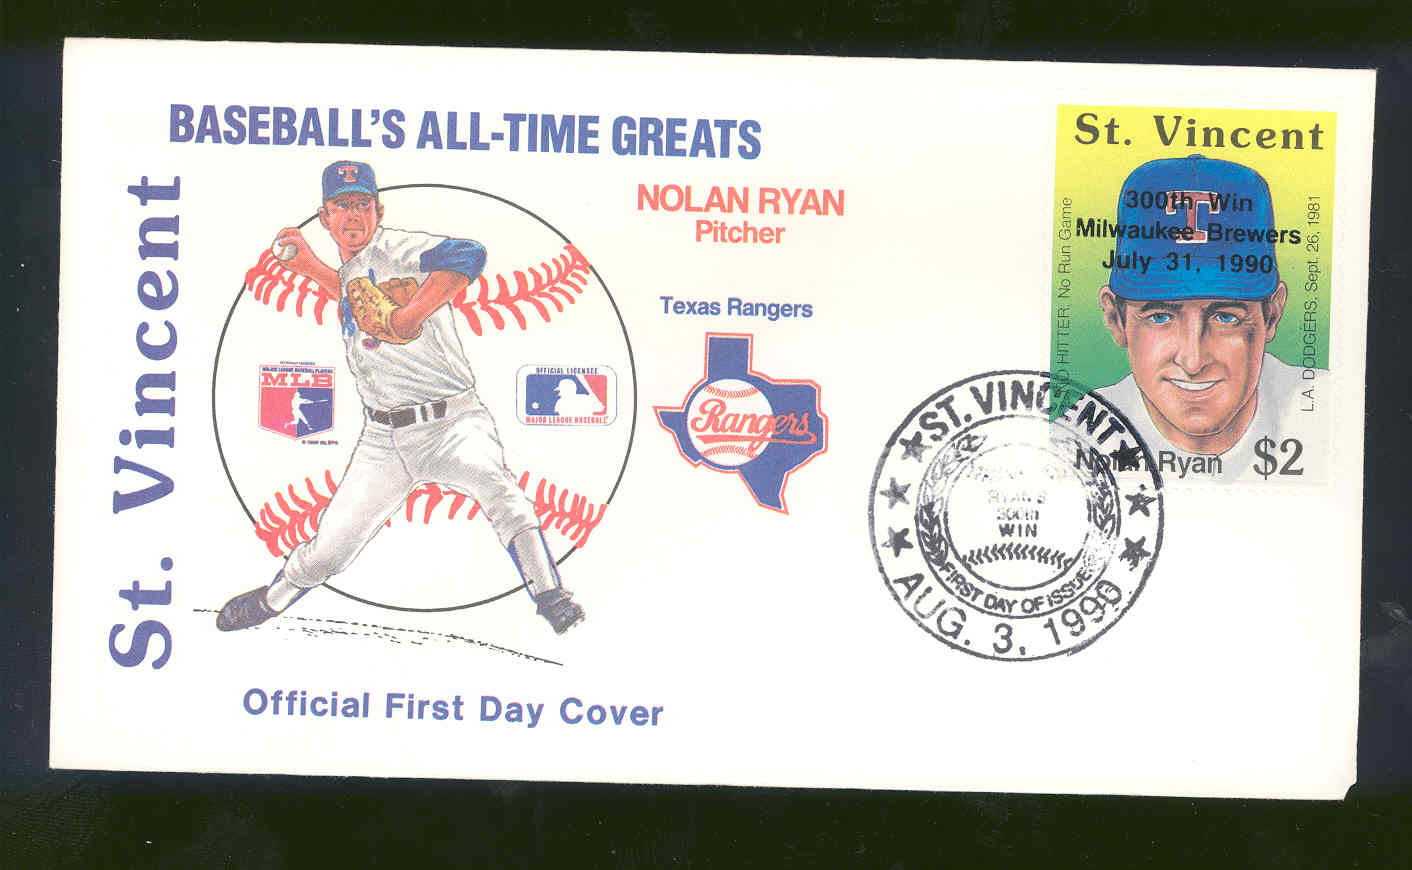 July 31, 1990 First Day Cover Baseball's All-Time Greats Nolan Ryan Rangers